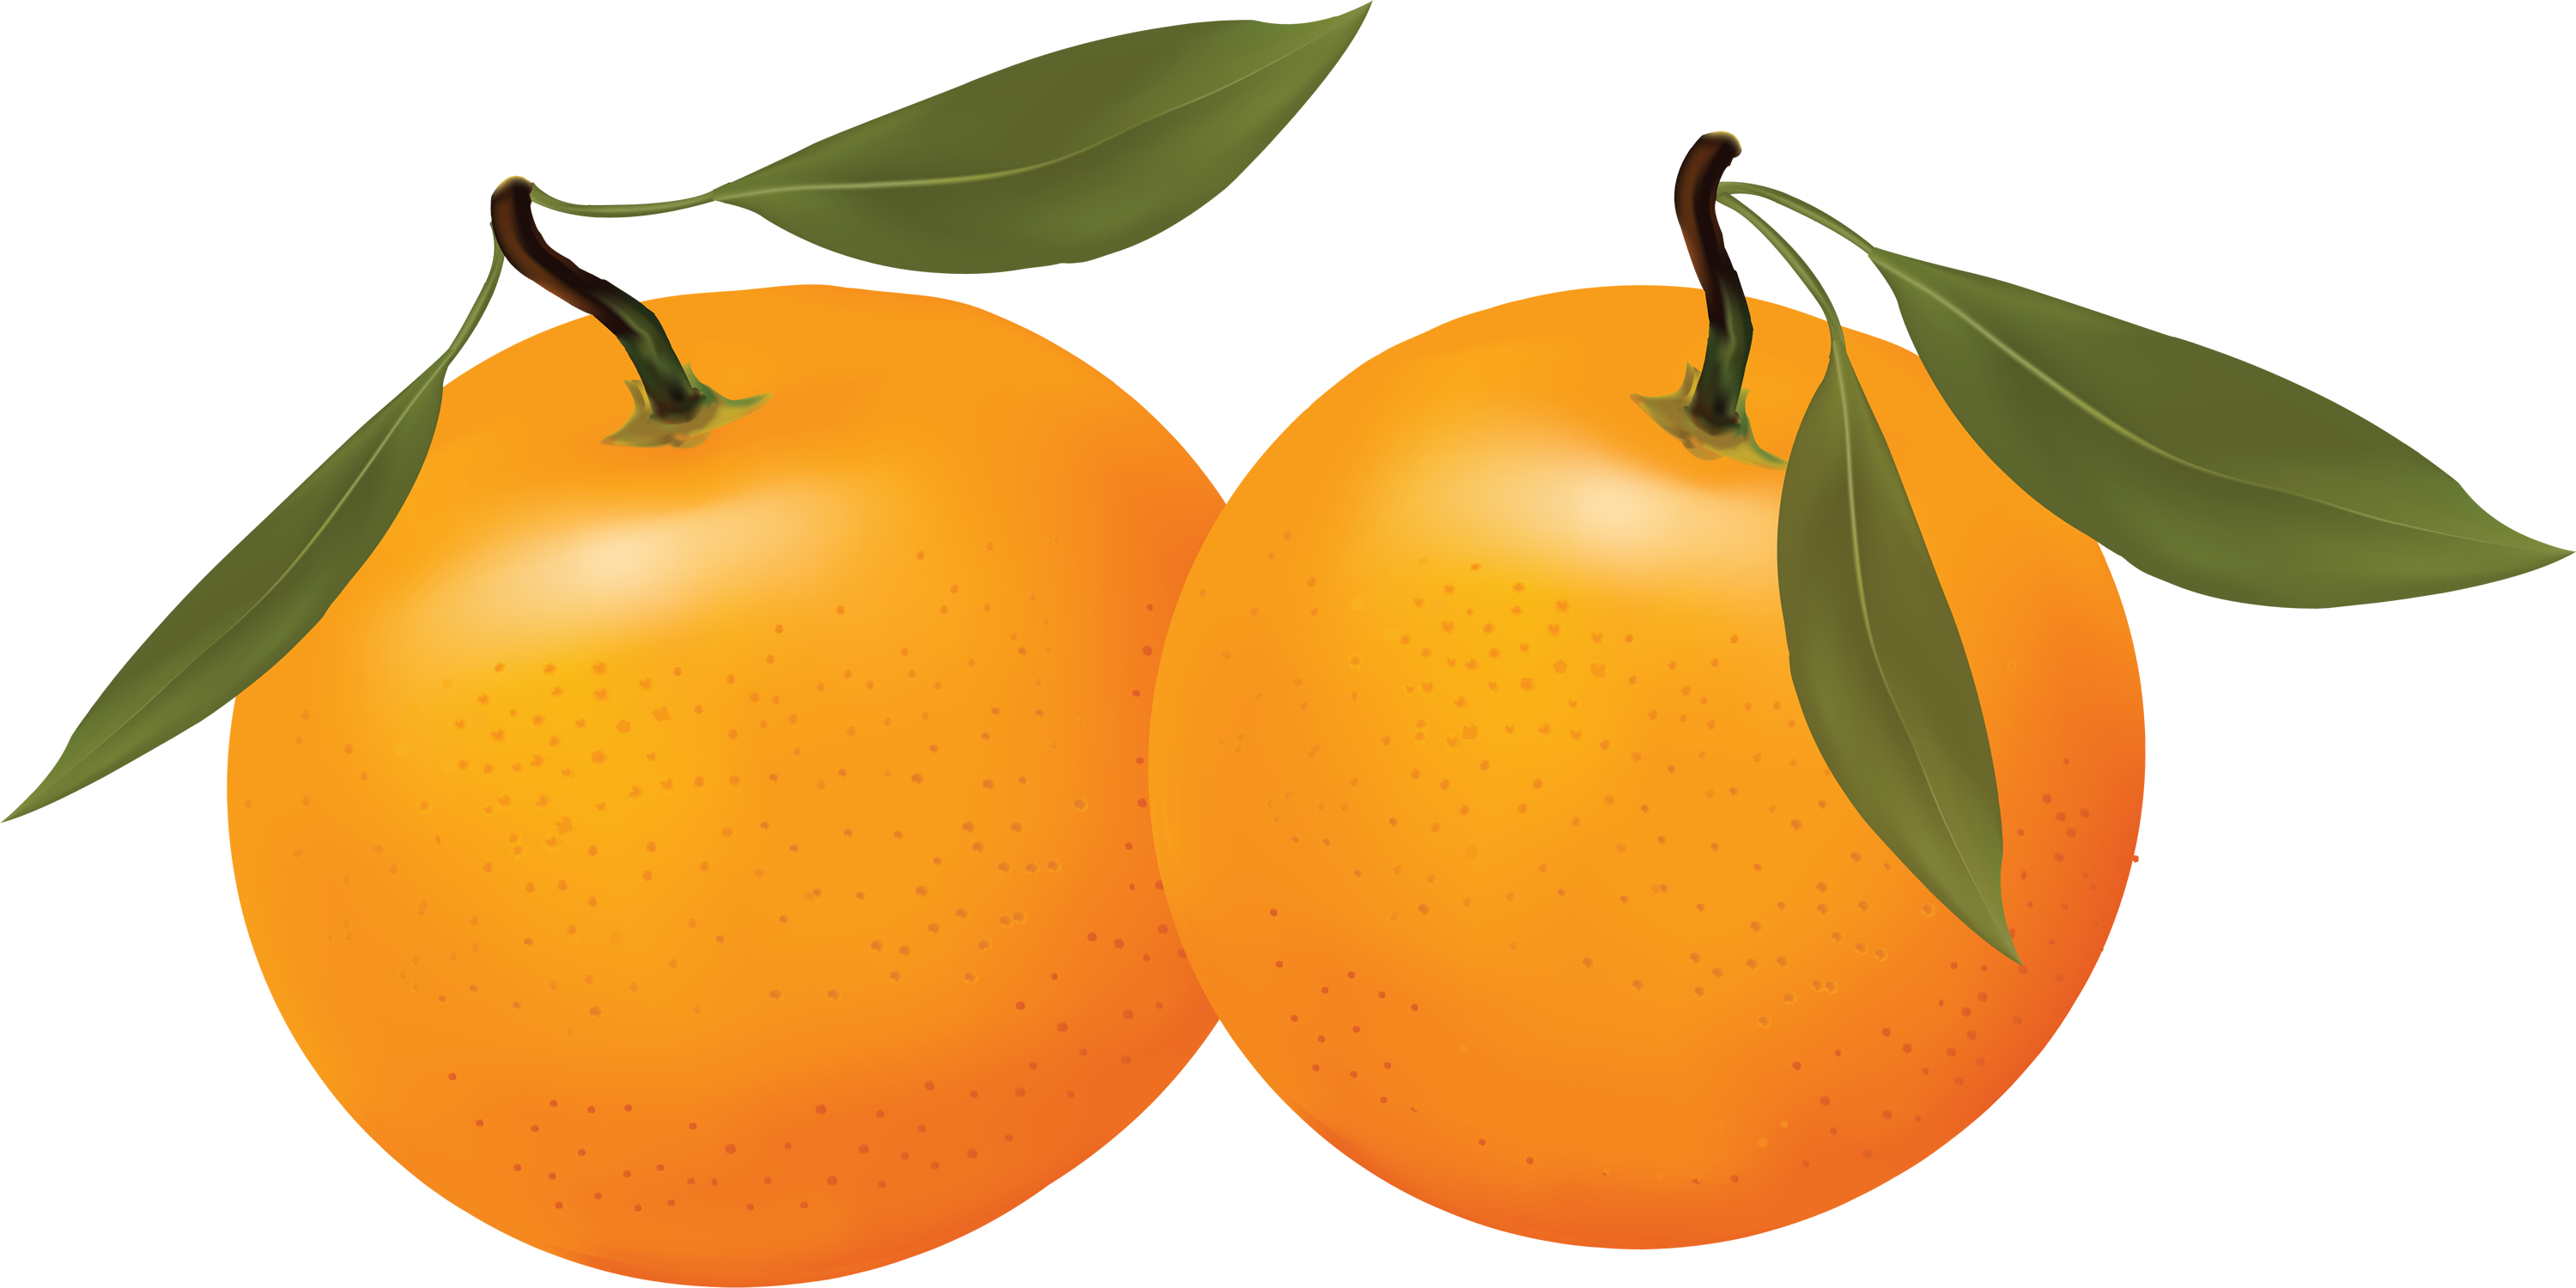 2 clipart orange. Free cliparts download clip